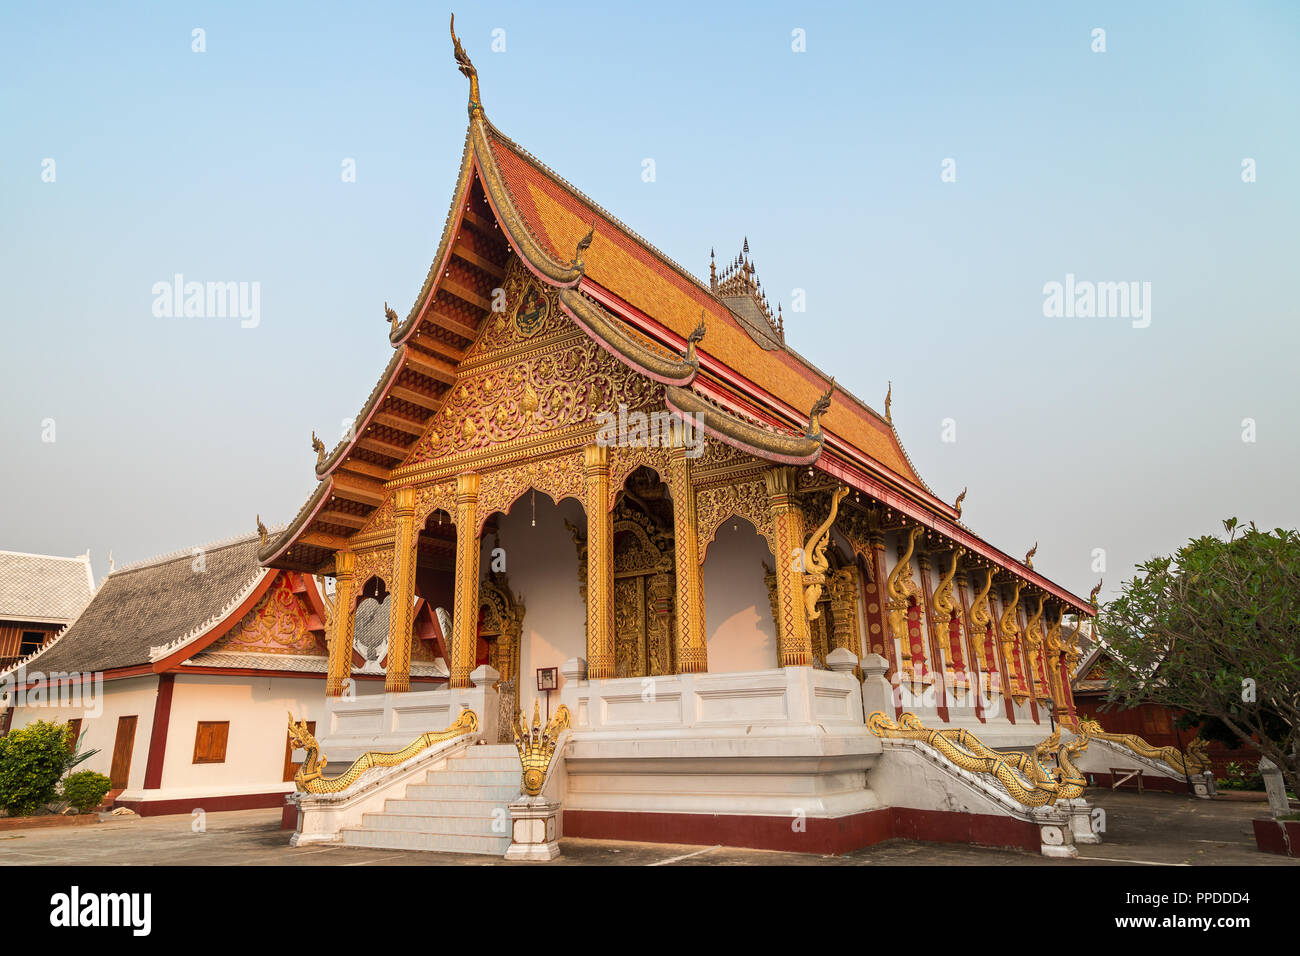 View of the Buddhist Vat Nong Sikhounmuang Temple in Luang Prabang, Laos, in the late afternoon. - Stock Image